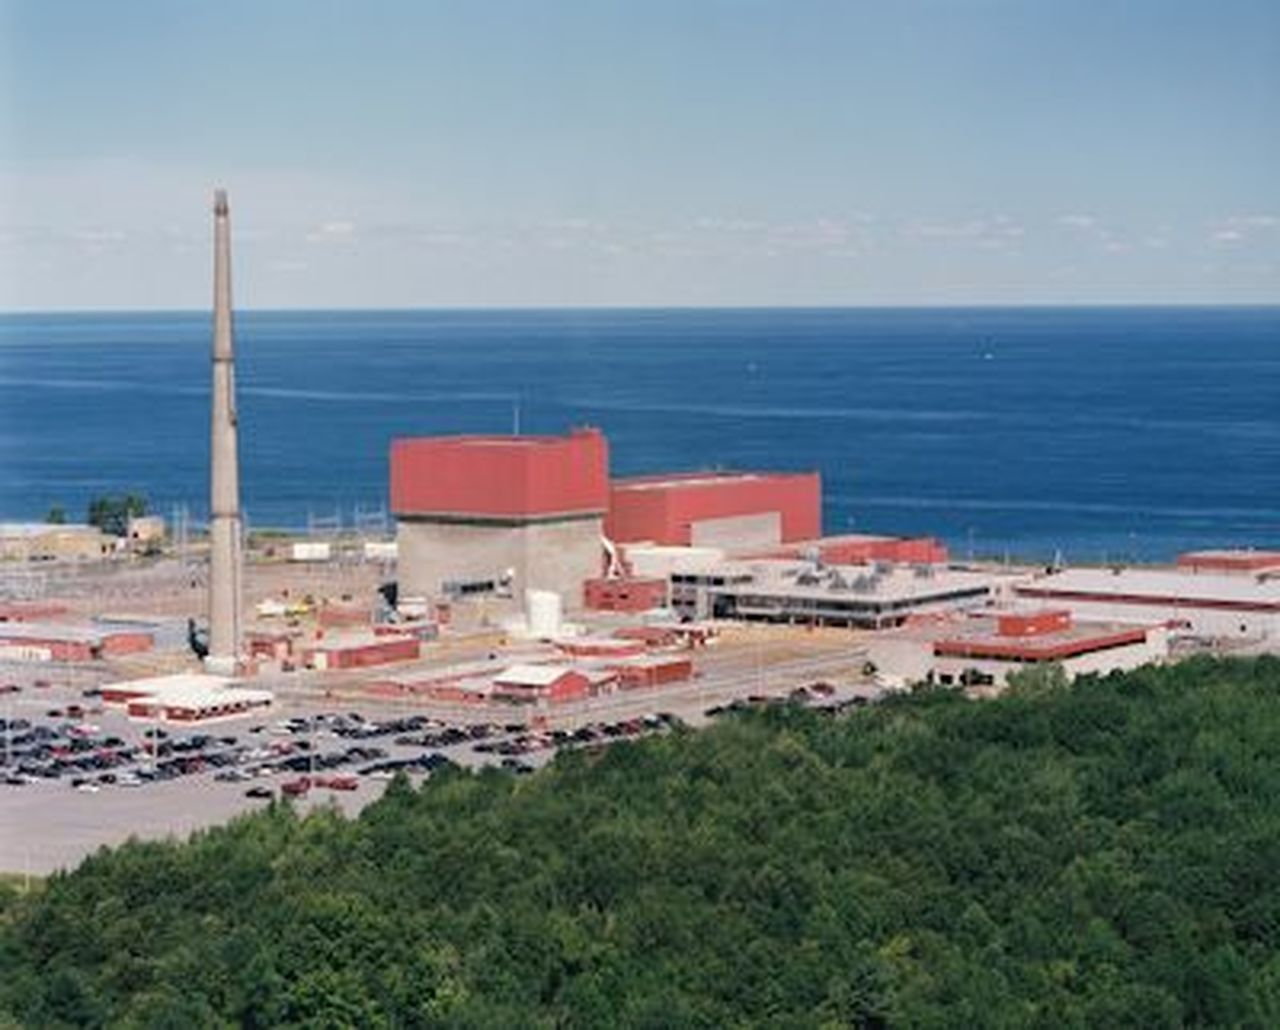 James A. Fitzpatrick Nuclear Power Plant